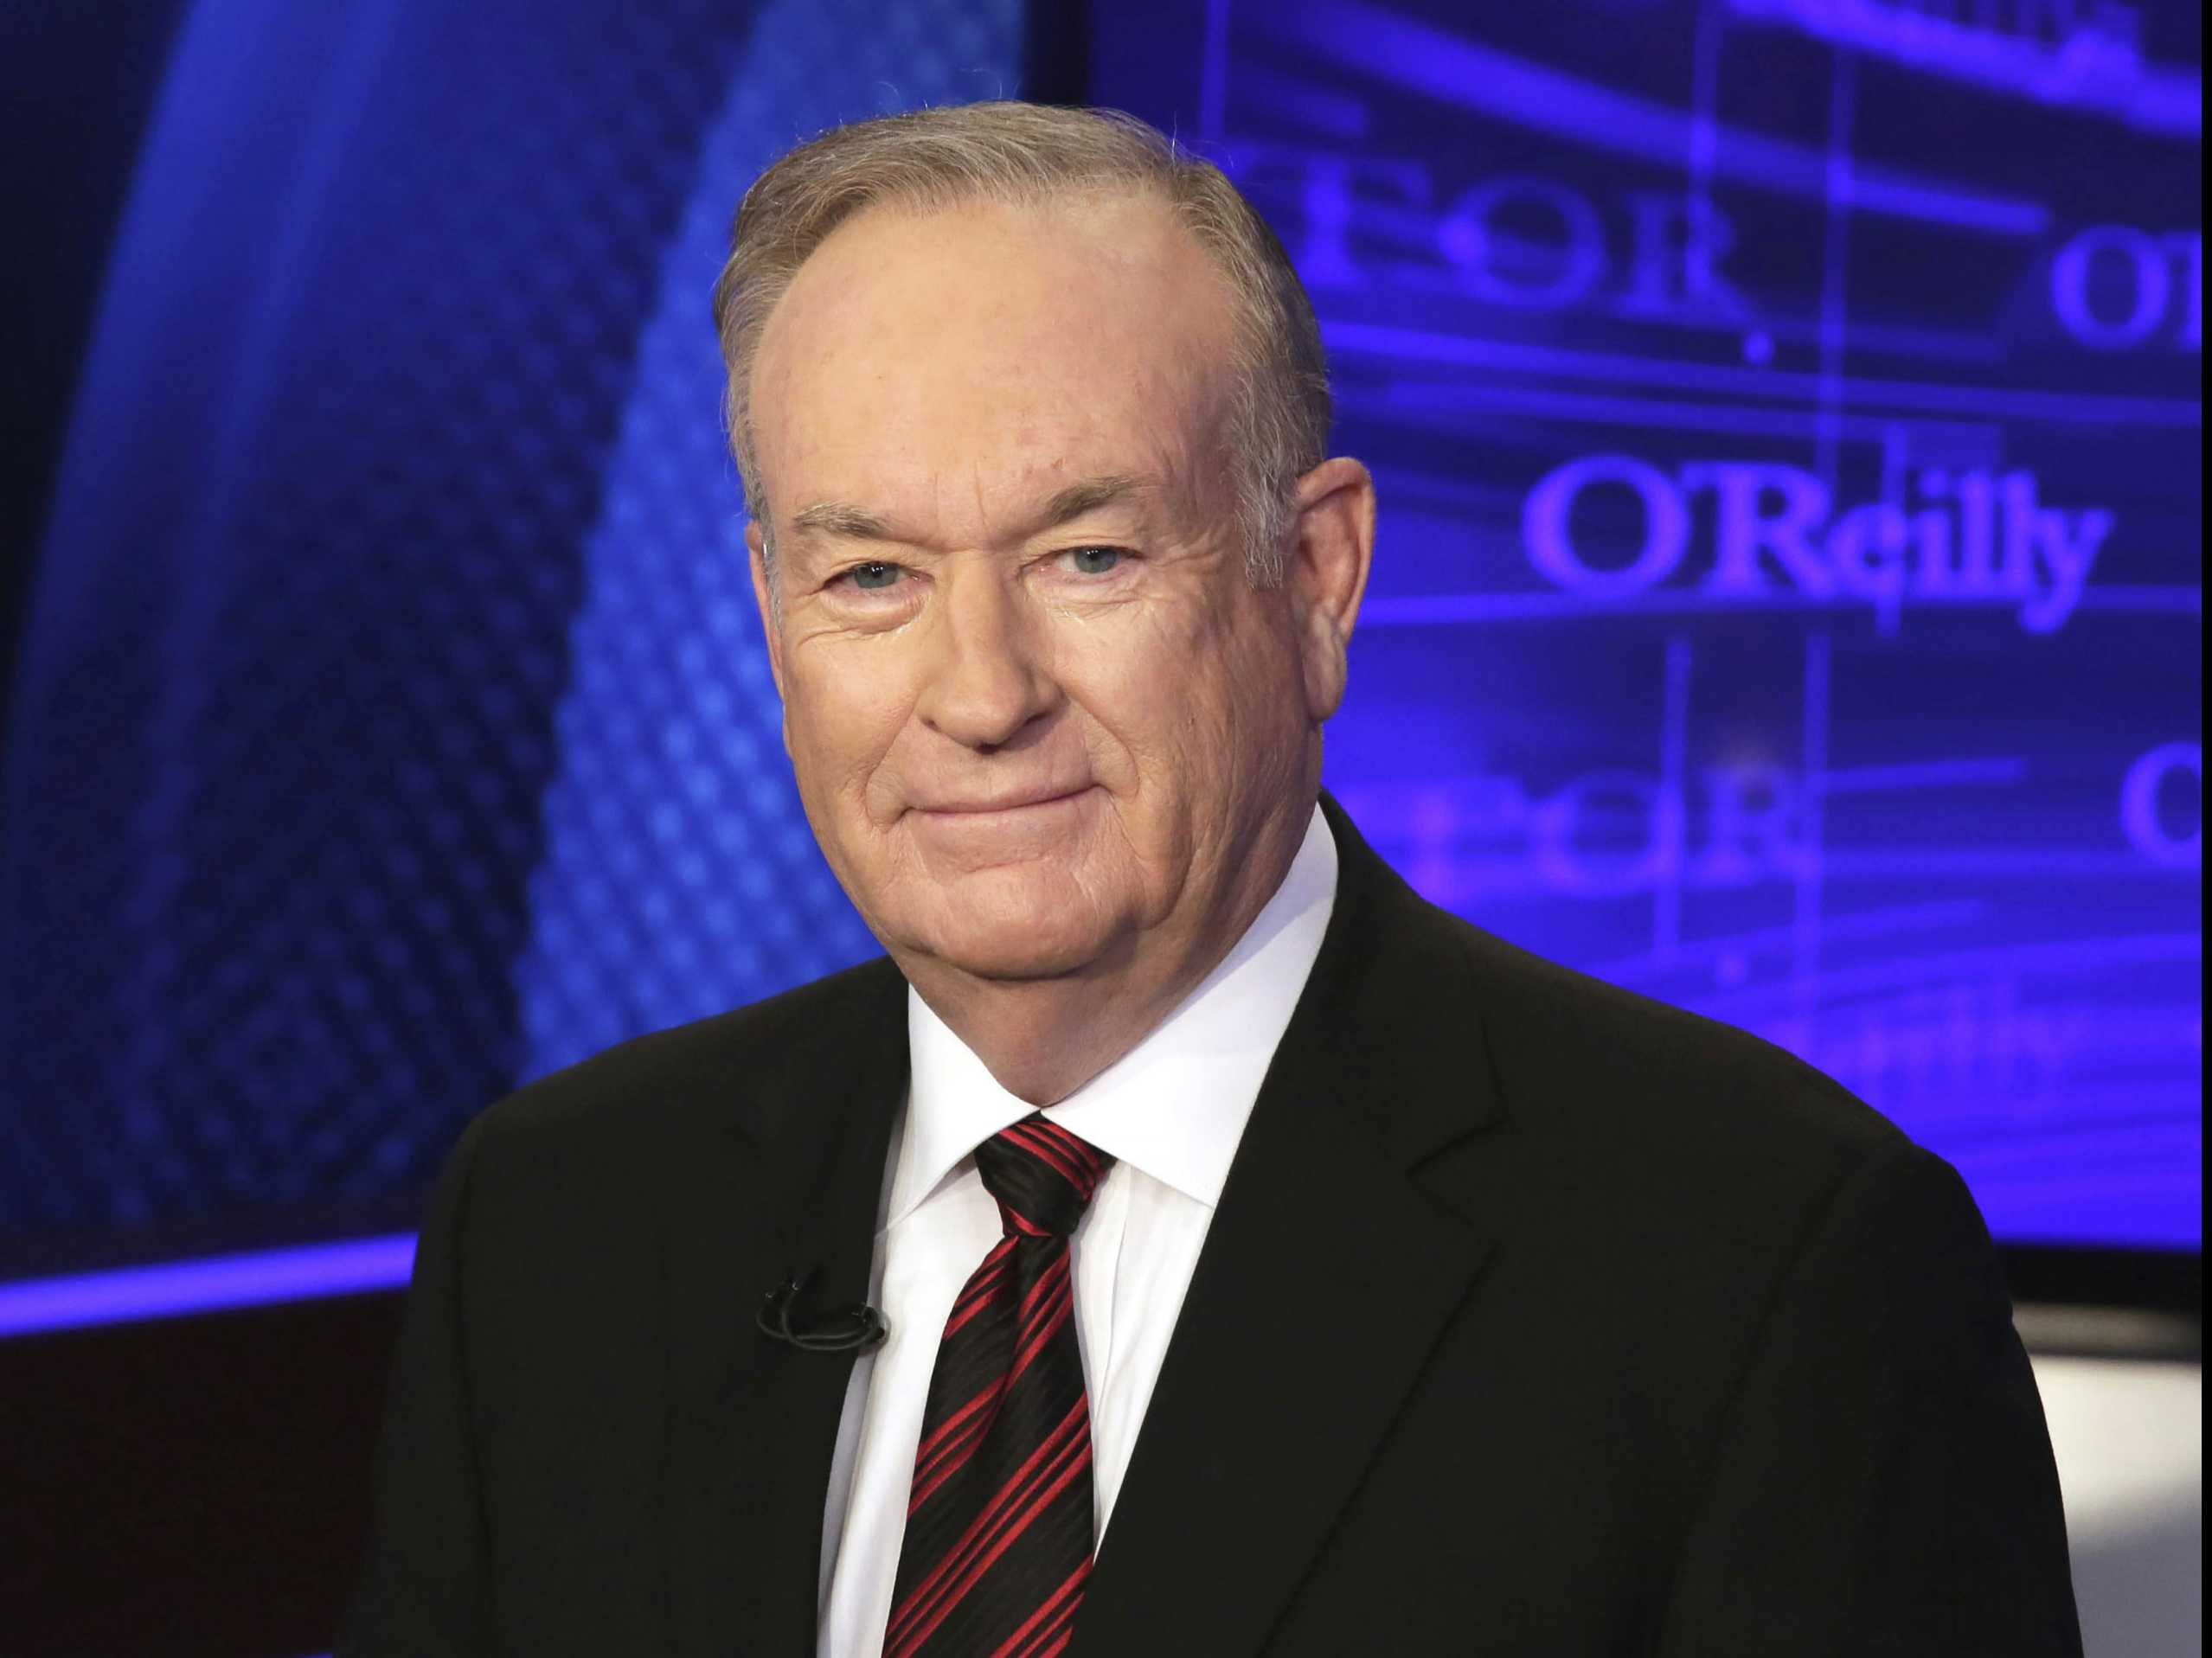 Bill O'Reilly Says Attacks are 'Horror Show'